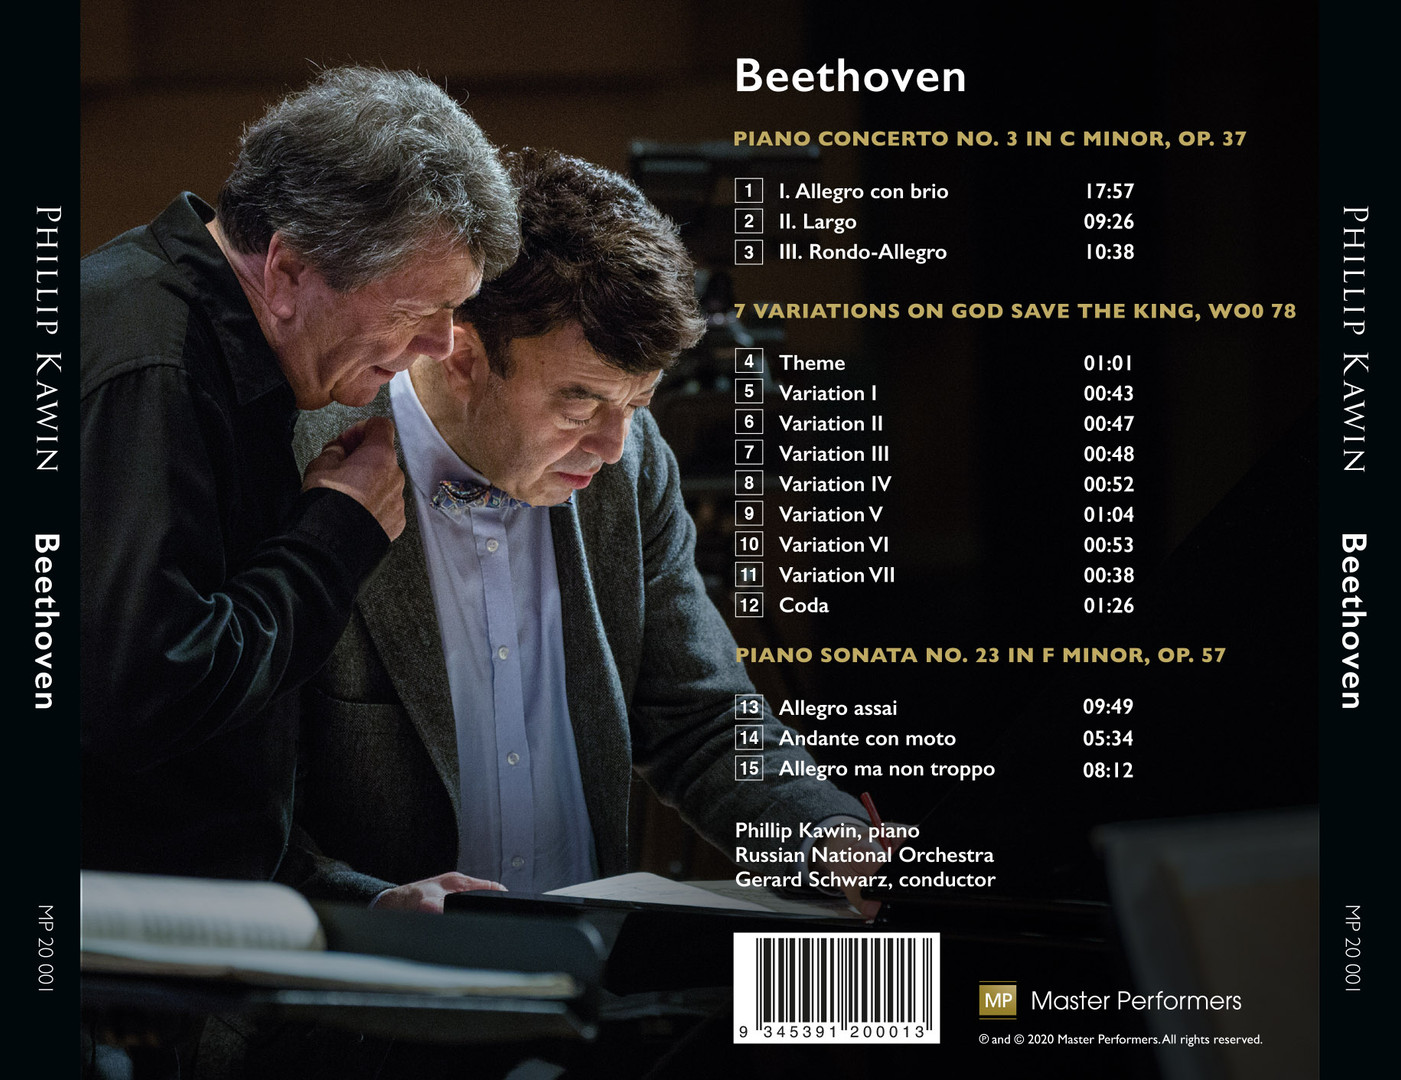 MP 20 001 Phillip Kawin: BEETHOVEN Piano Concerto No. 3 in C minor, Op. 37    7 Variations on 'God Save the King', Woo 78   Piano Sonata No. 23 in F minor, Op. 57